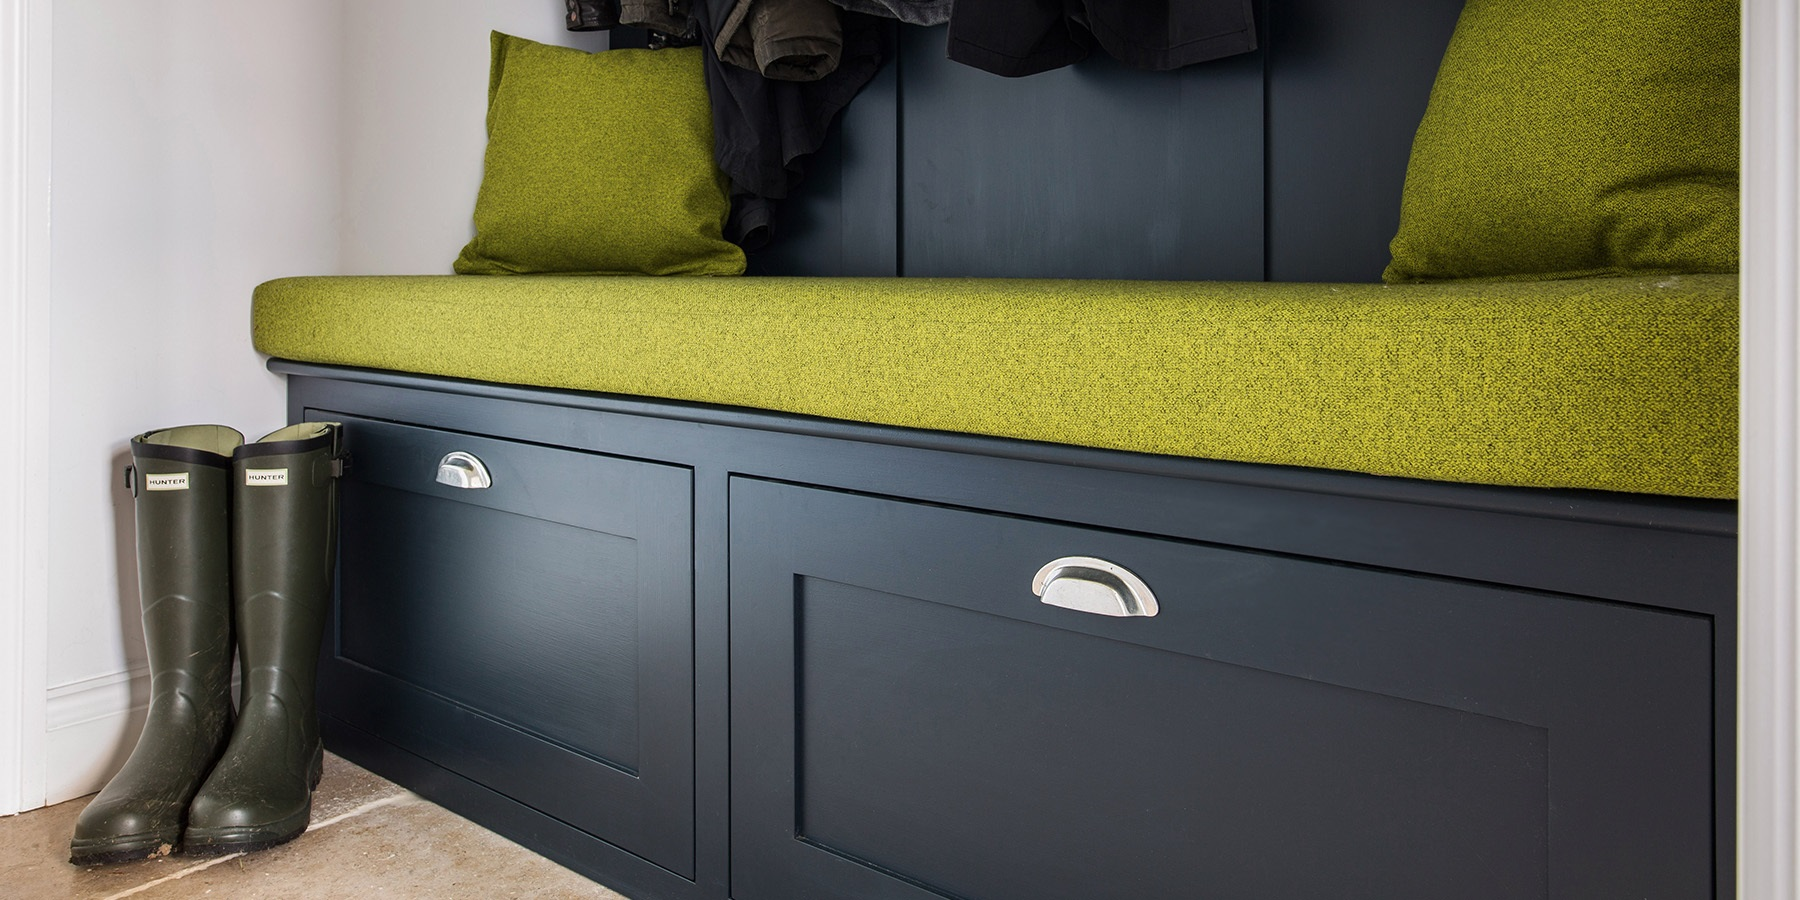 Burlanes Bespoke Bootroom - Handmade bootroom banquette seating with shaker panelling and coat hooks.